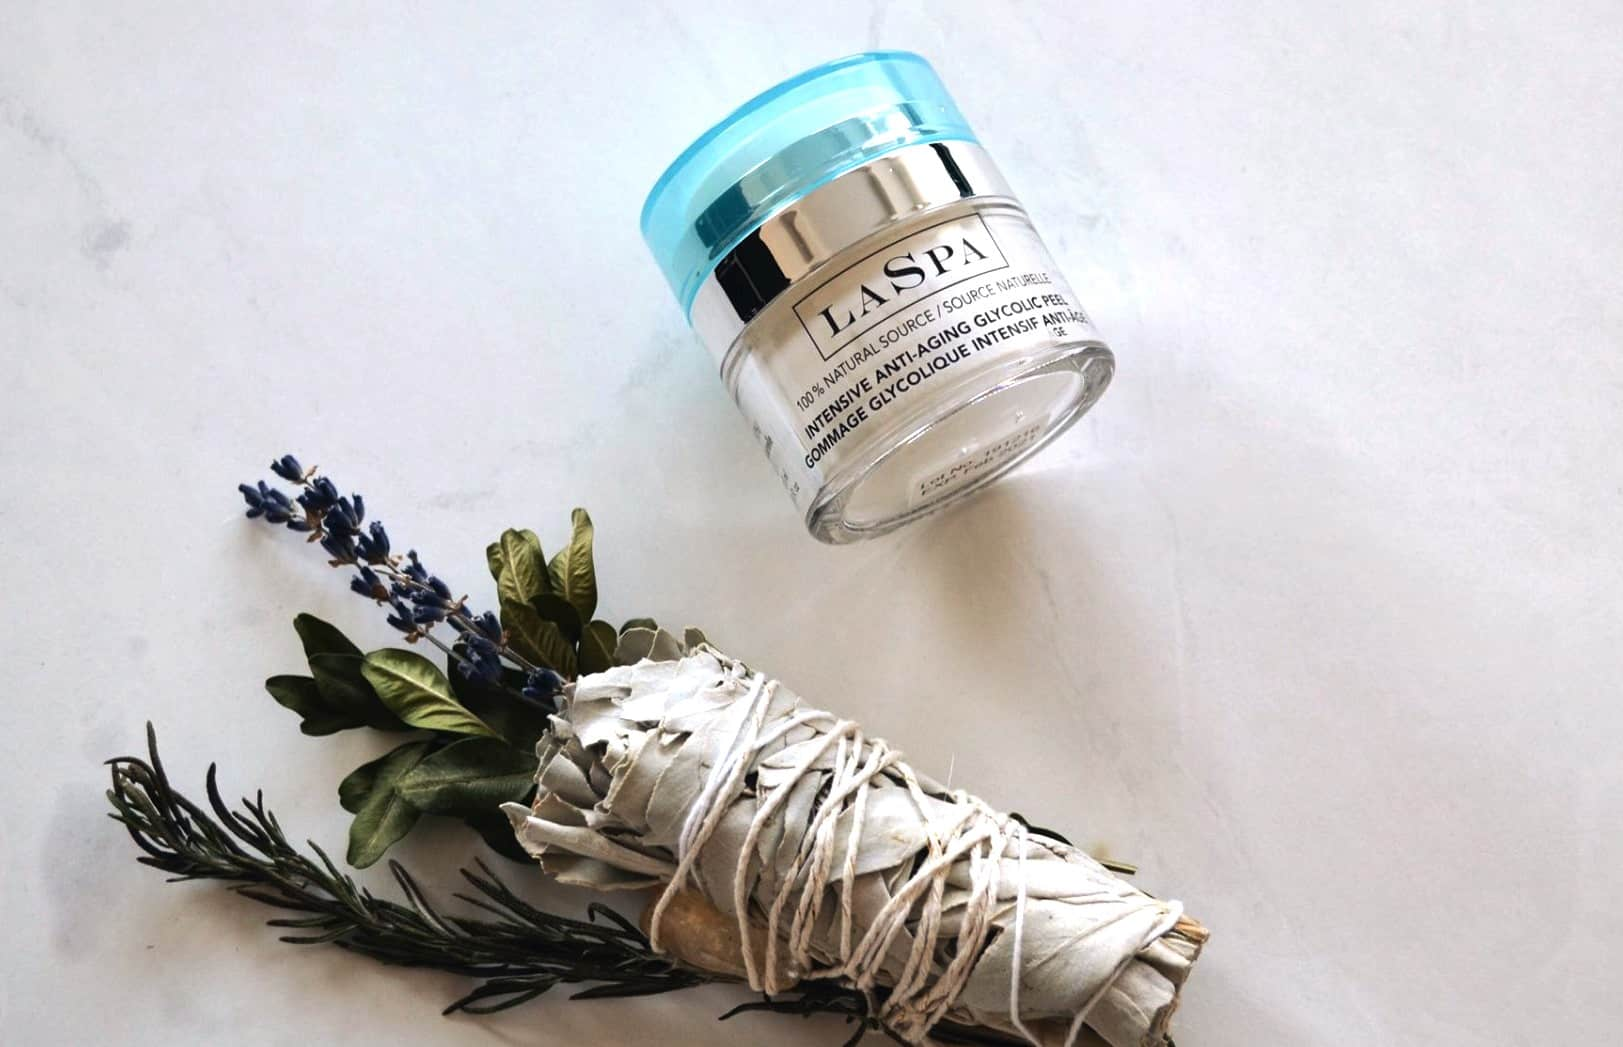 EcoLux☆Lifestyle: La Spa Offers 7-Day Anti-Aging At-Home Treatment